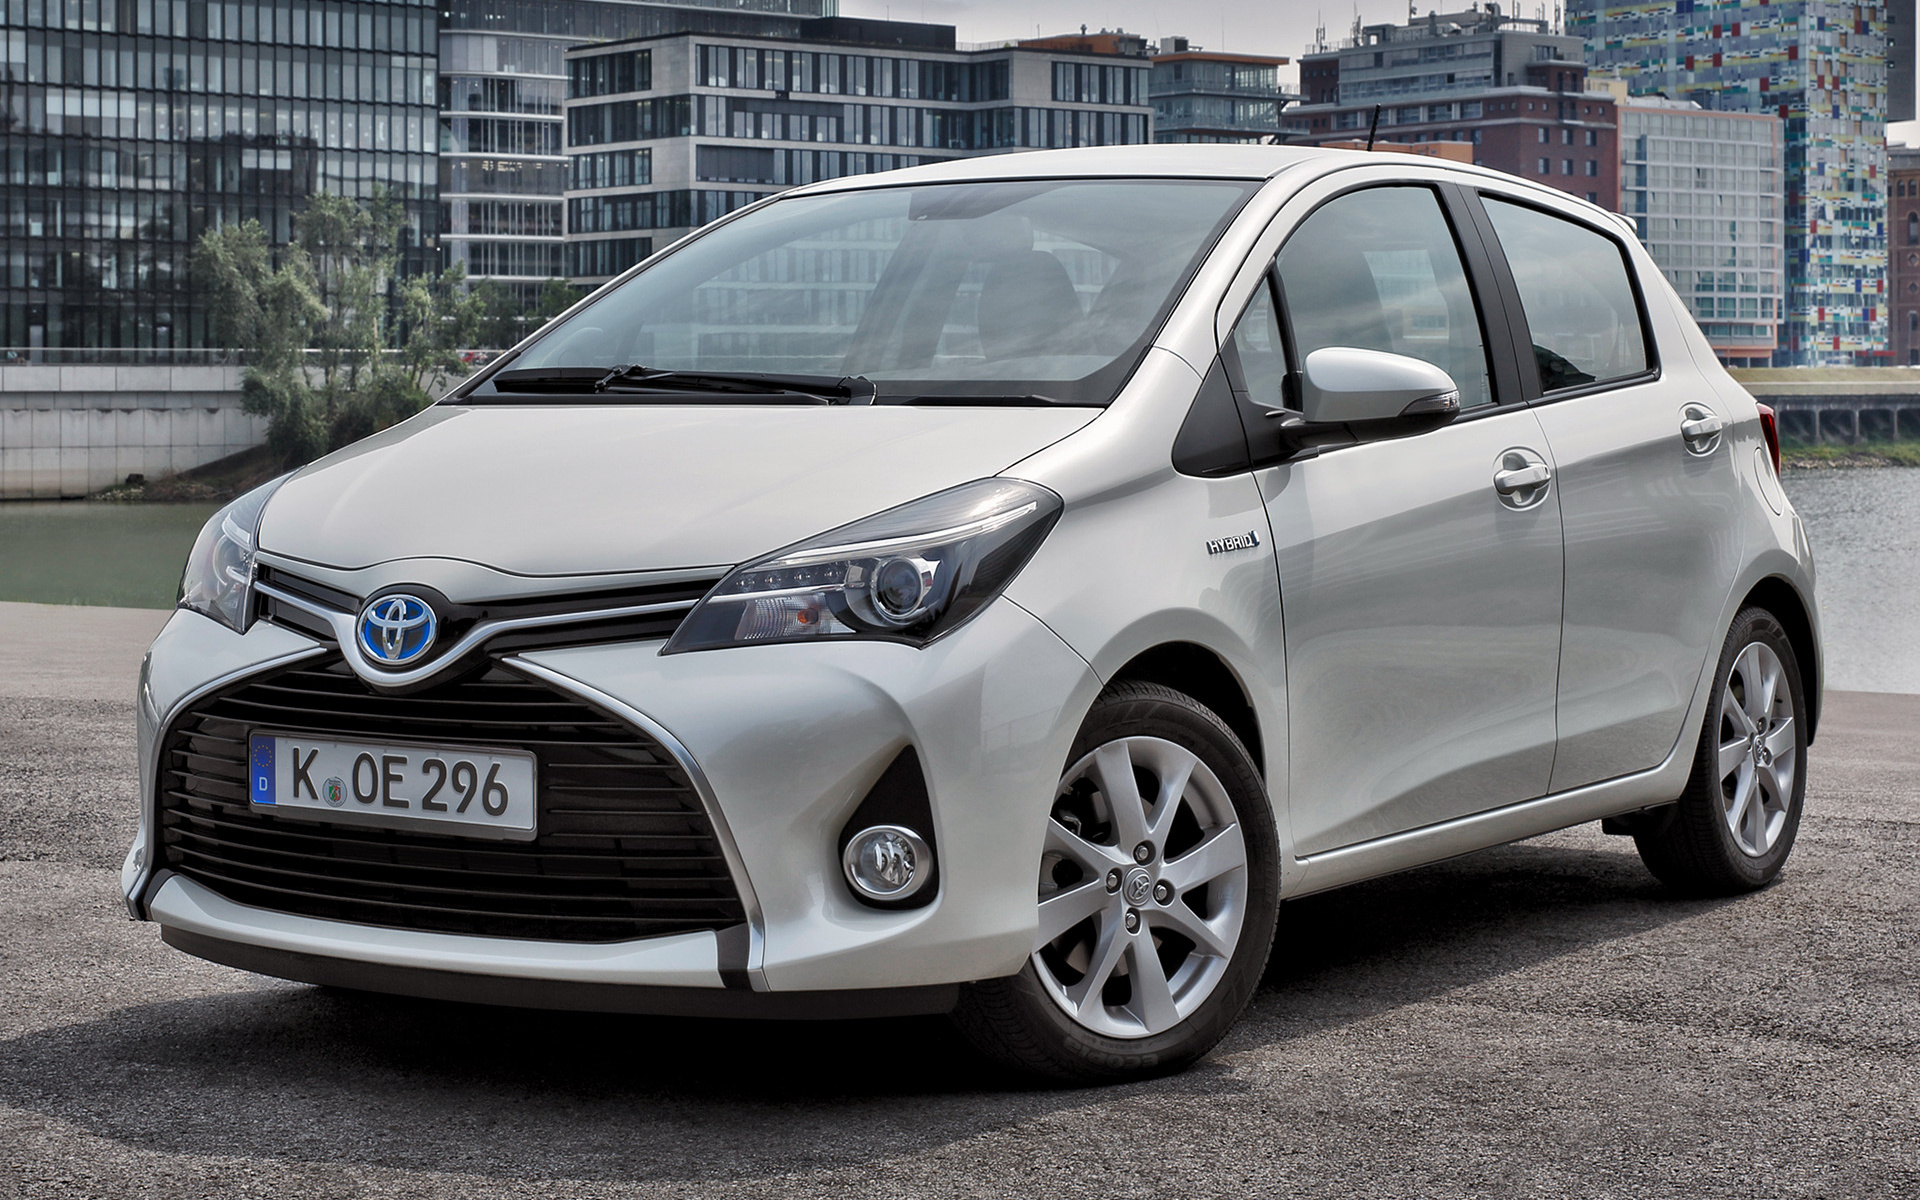 2014 toyota yaris hybrid wallpapers and hd images car. Black Bedroom Furniture Sets. Home Design Ideas